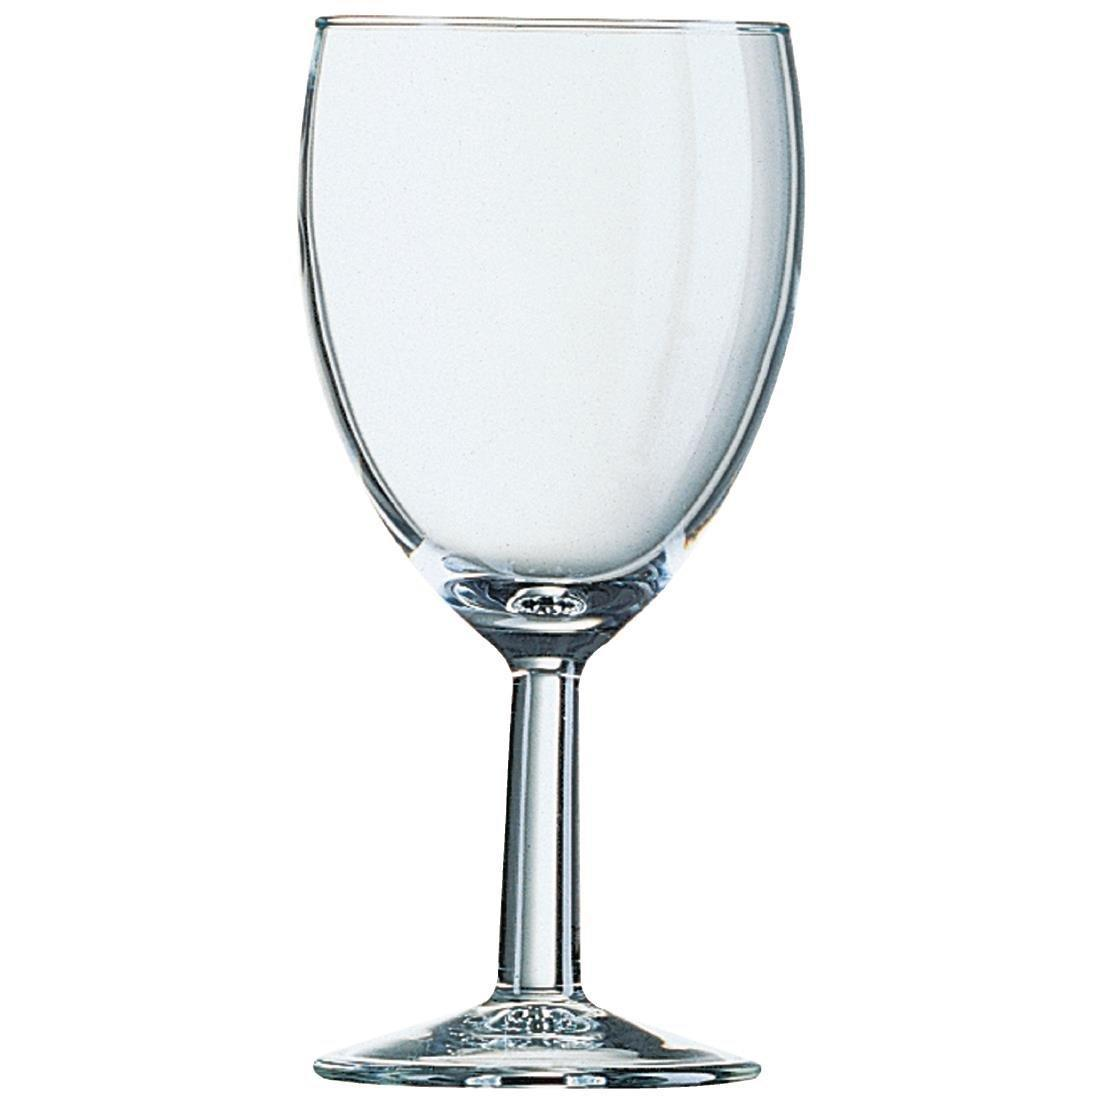 Arc Savoie Goblet - 190ml 6.66oz (Box 48) - CJ503